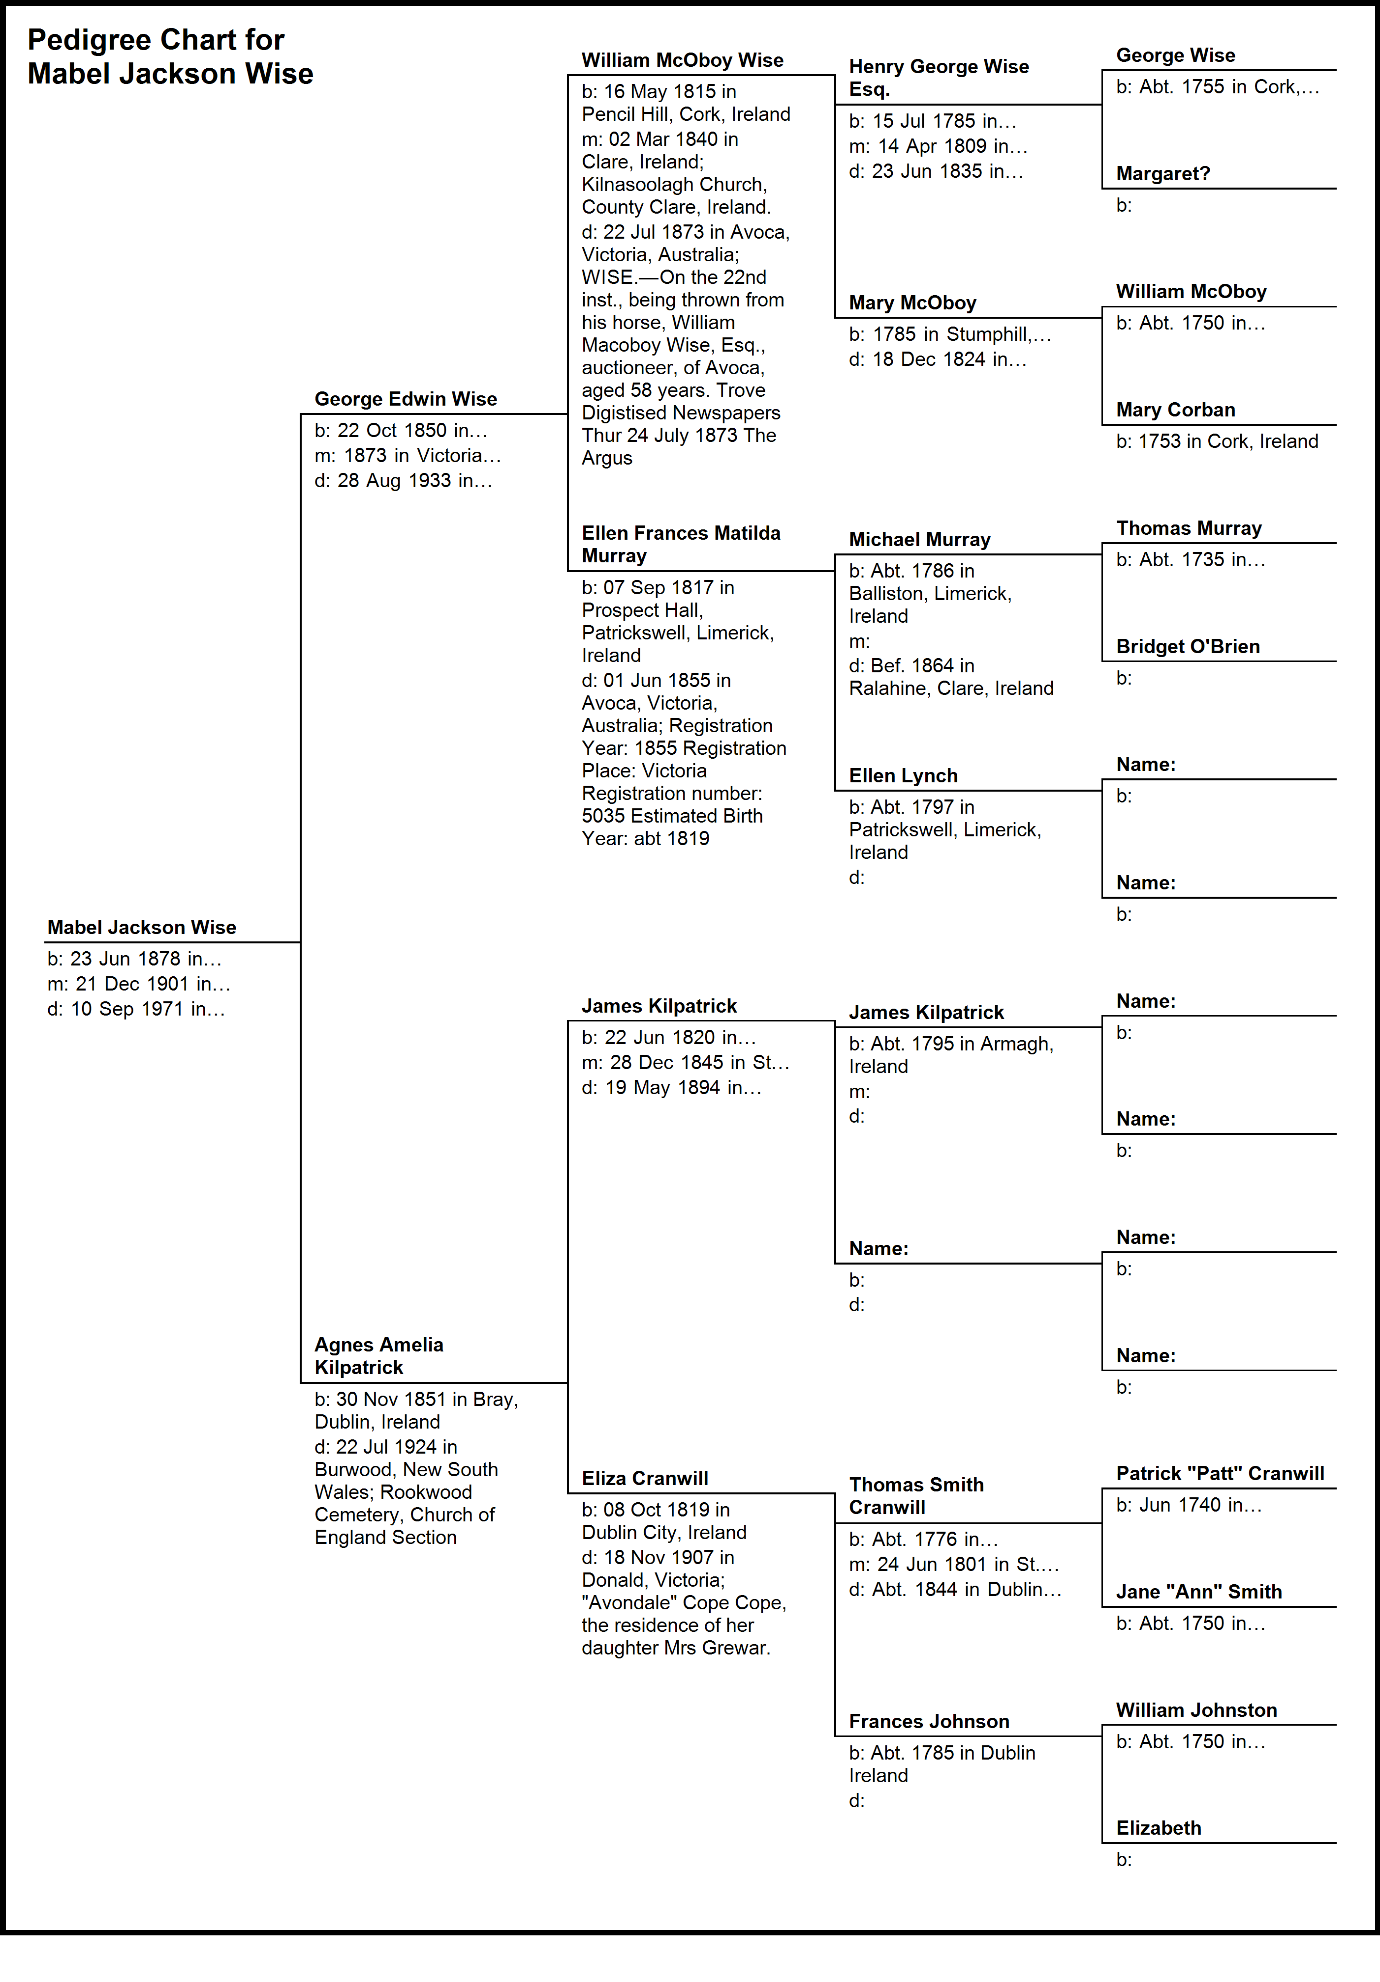 C:\Users\Virginia Rundle\Dropbox\VR\Ancestry Stuff\Kilpatrick\Pedigree Chart for Mabel Jackson Wise 2.bmp